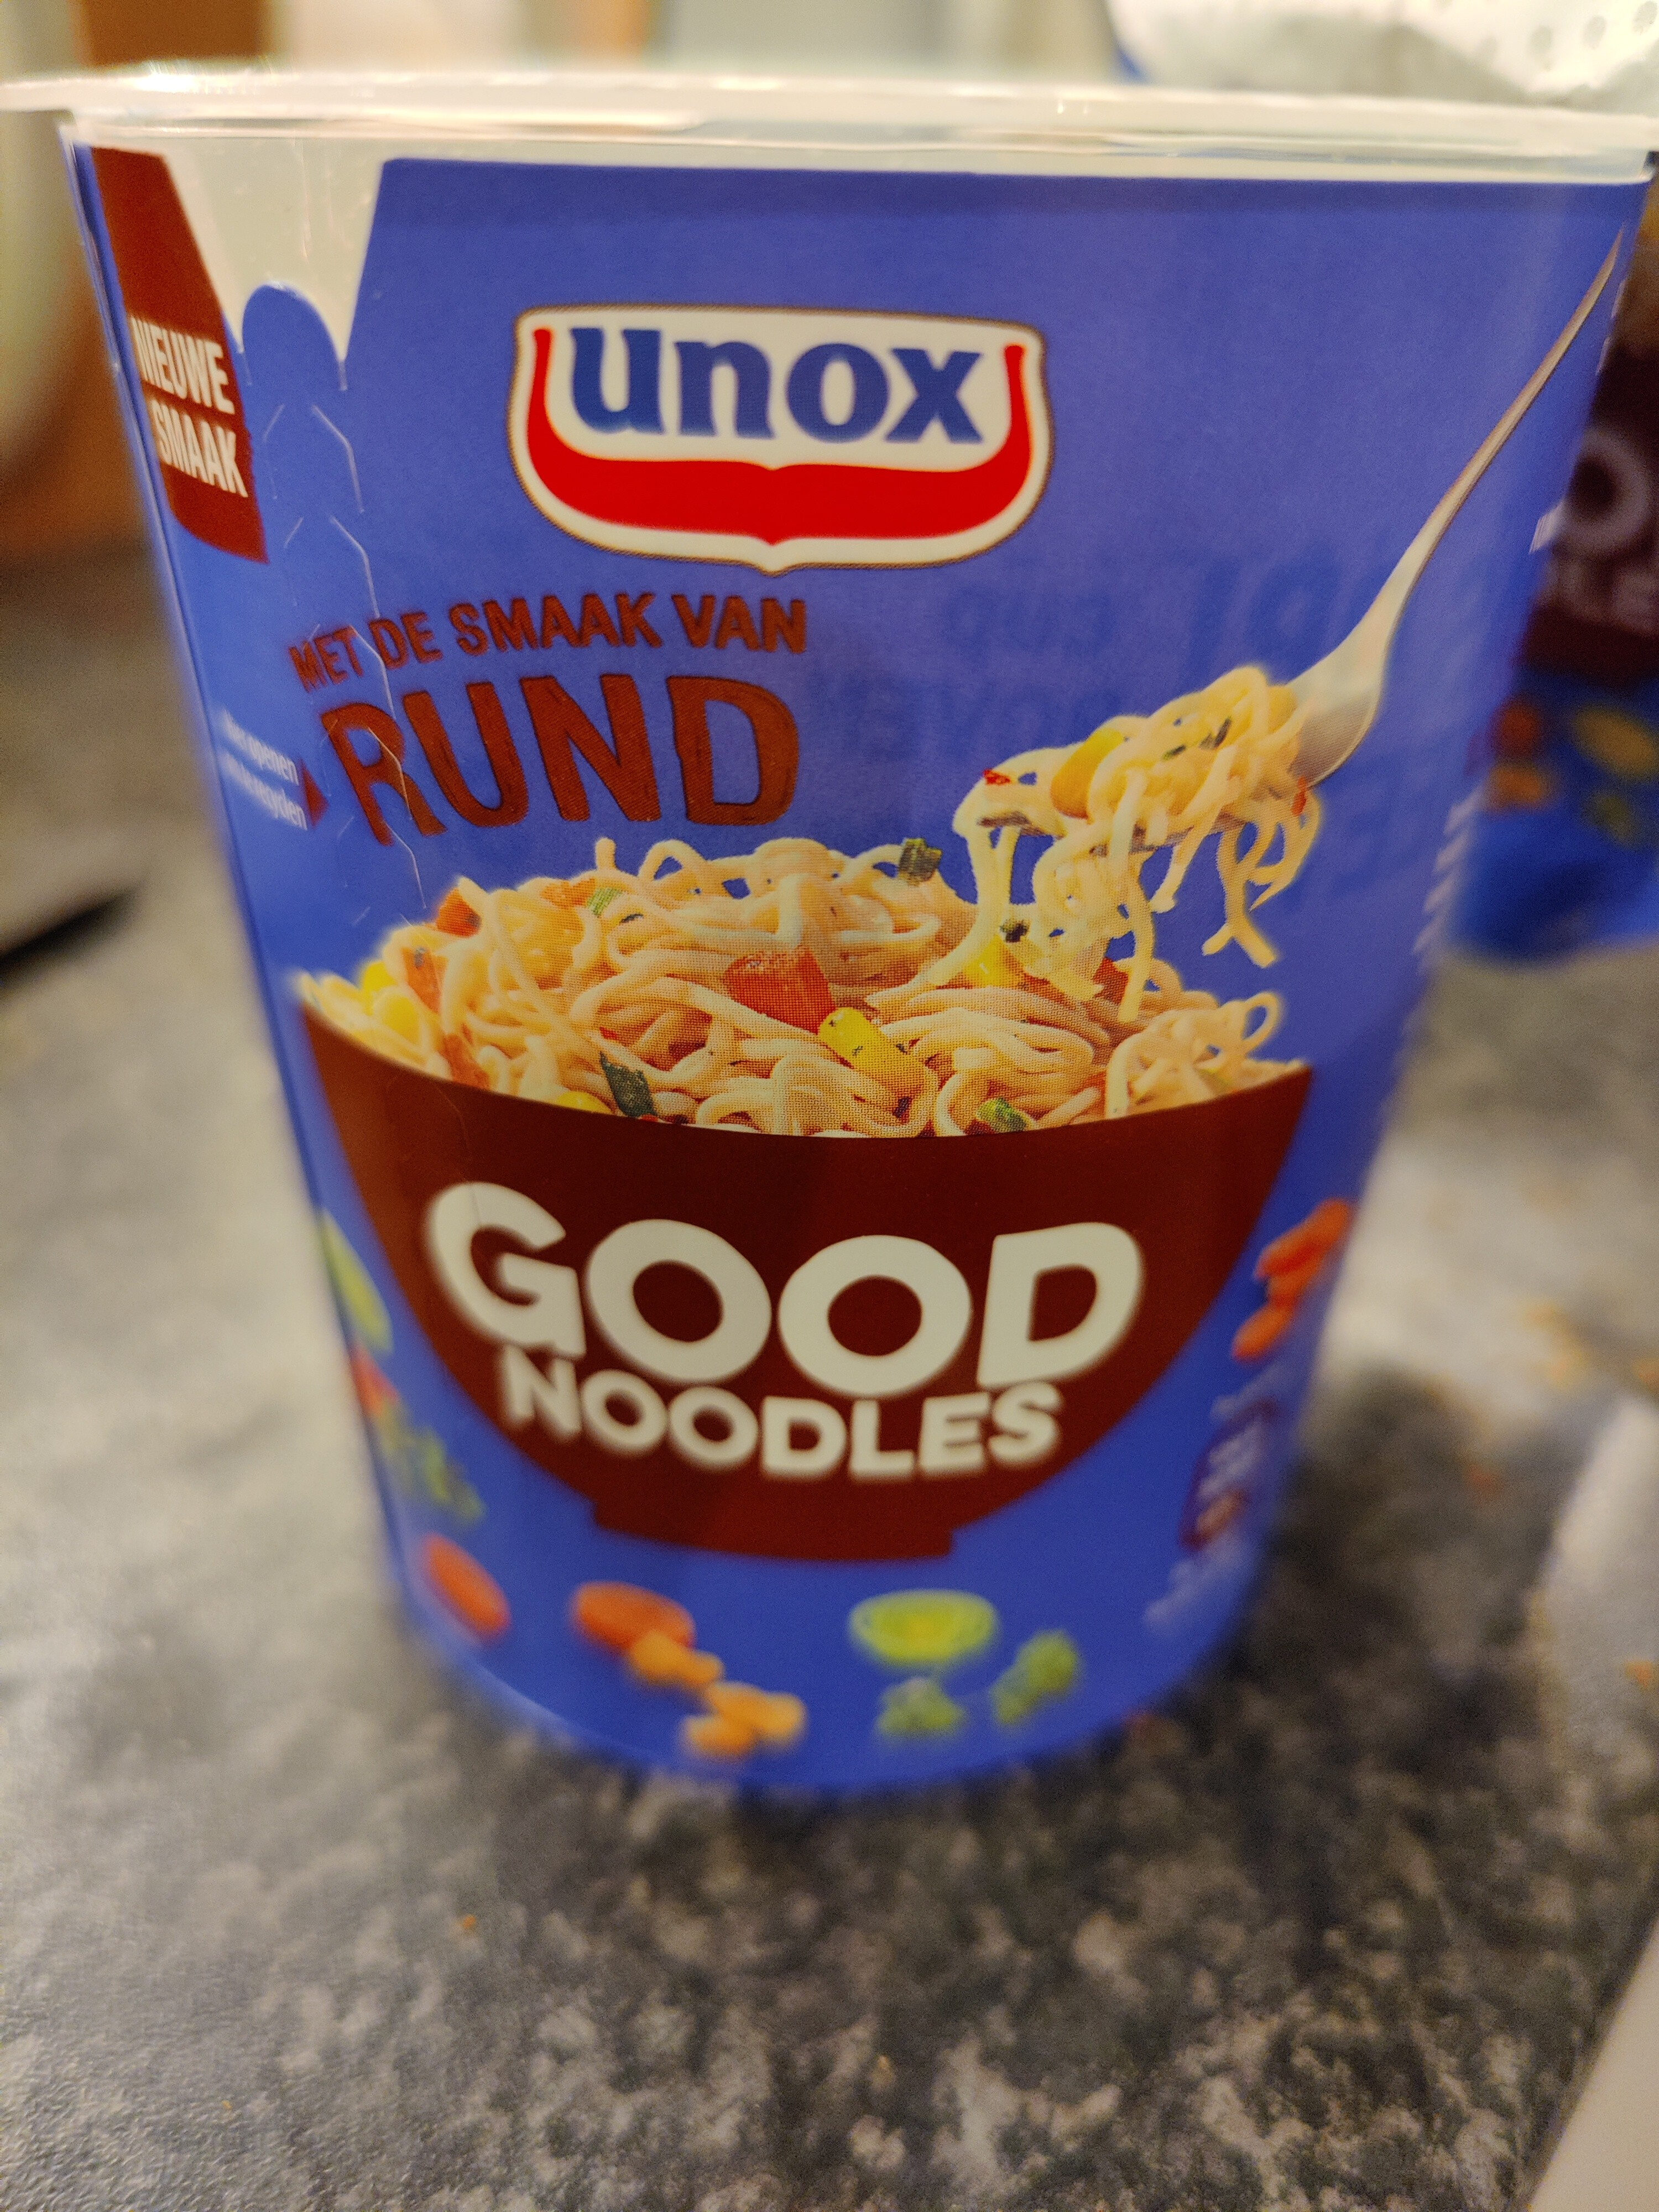 Good Noodles Rund - Product - nl